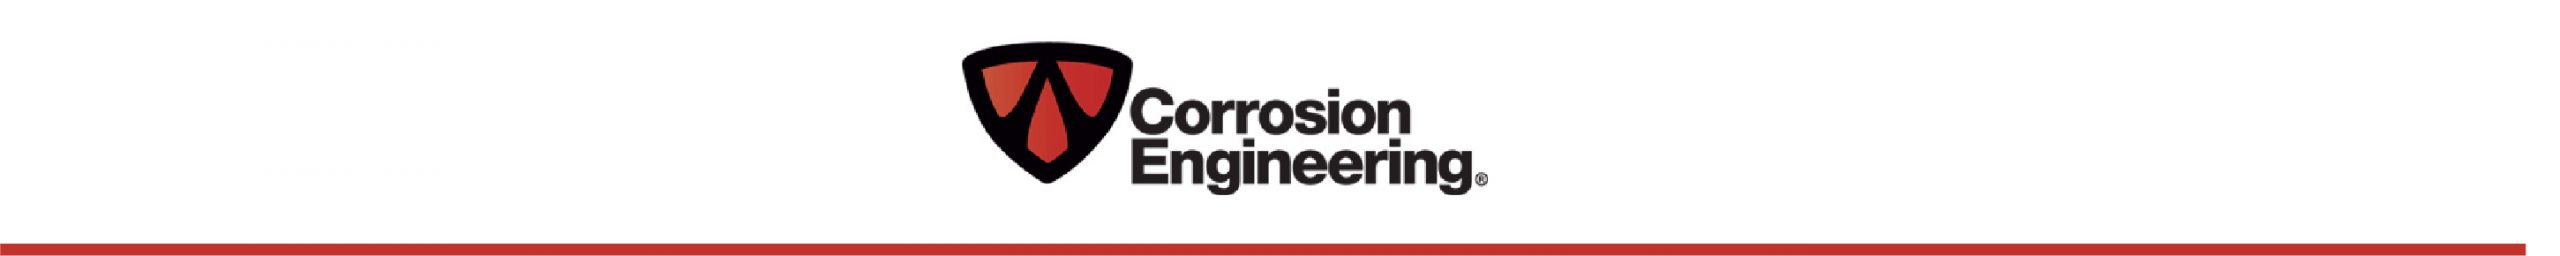 Corrosion Engineering zulers